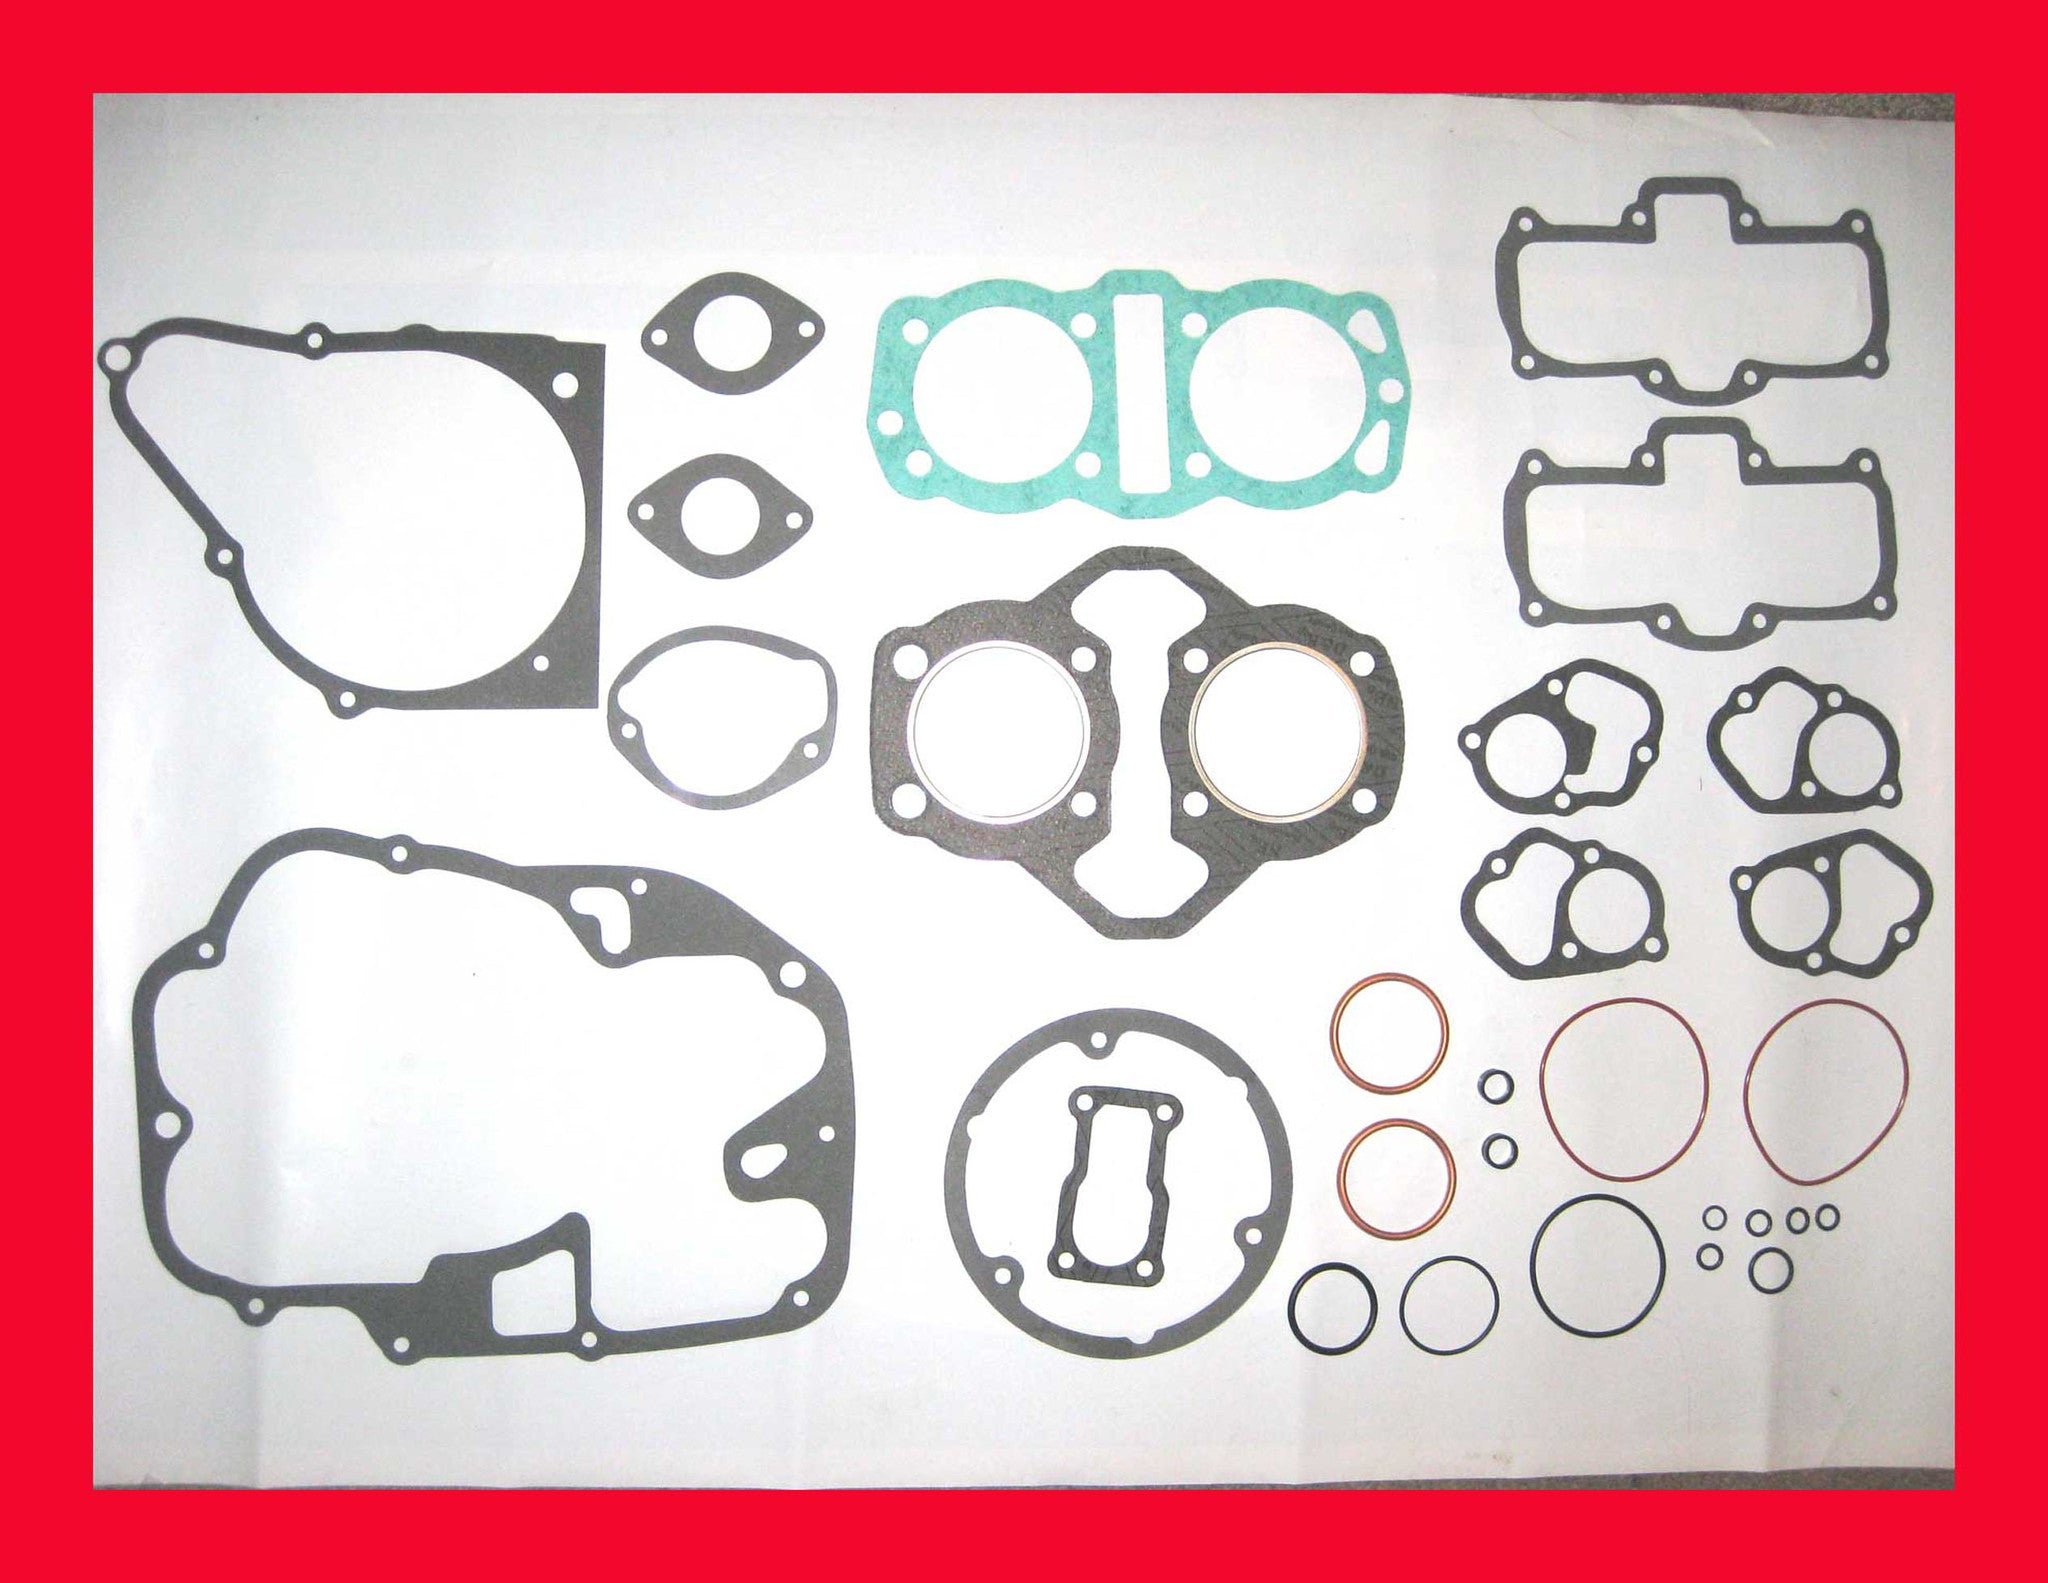 Honda CB450 CL450 Gasket Set! 1968 1969 1970 1971 1972 1973 1974 Motorcycle 450